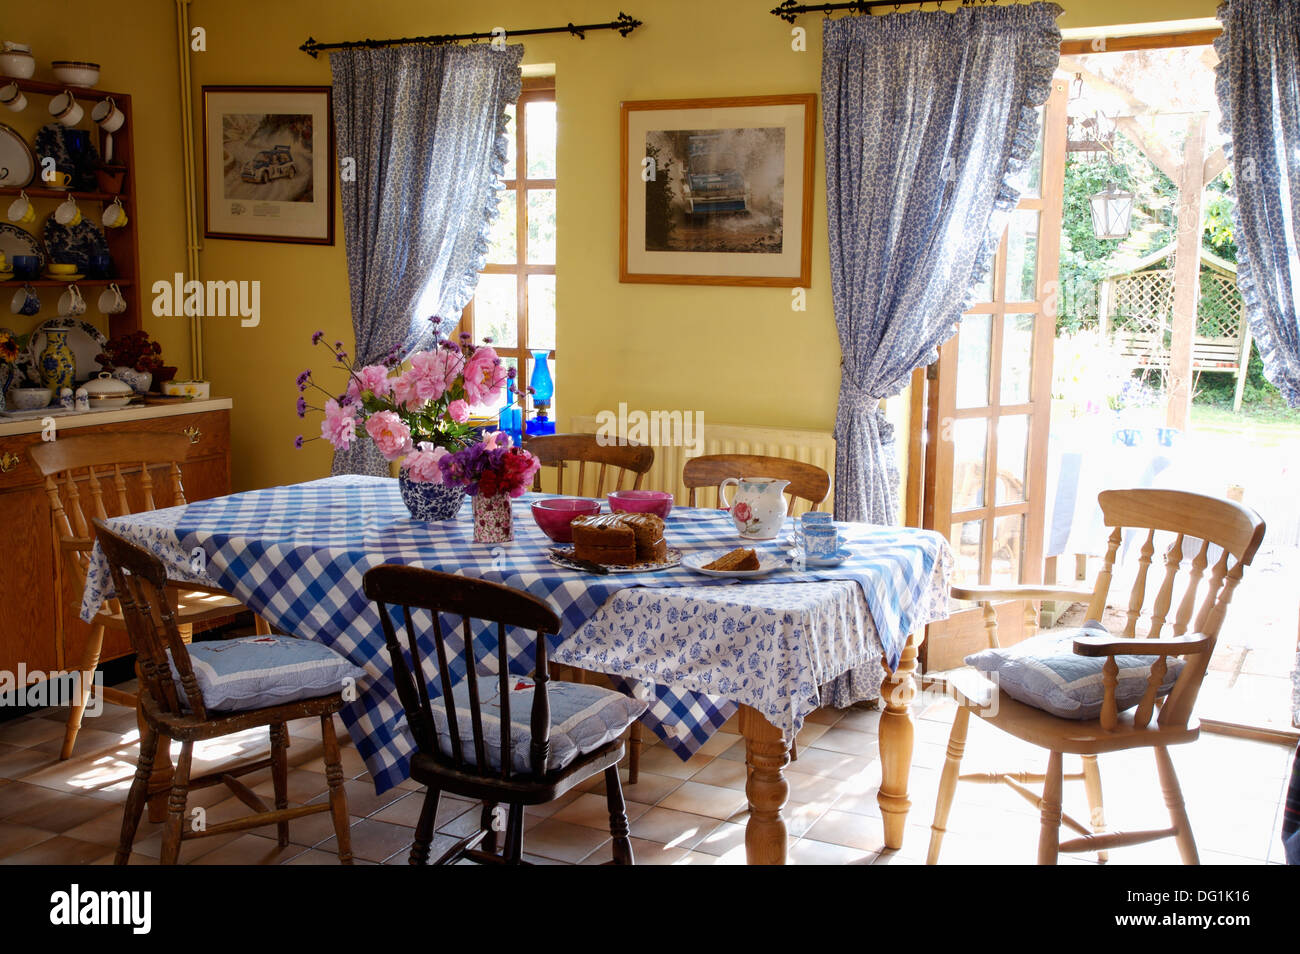 Blue Checked Cloth On Table With Stick Back Chairs In Yellow Dining Room  With Blue Curtains